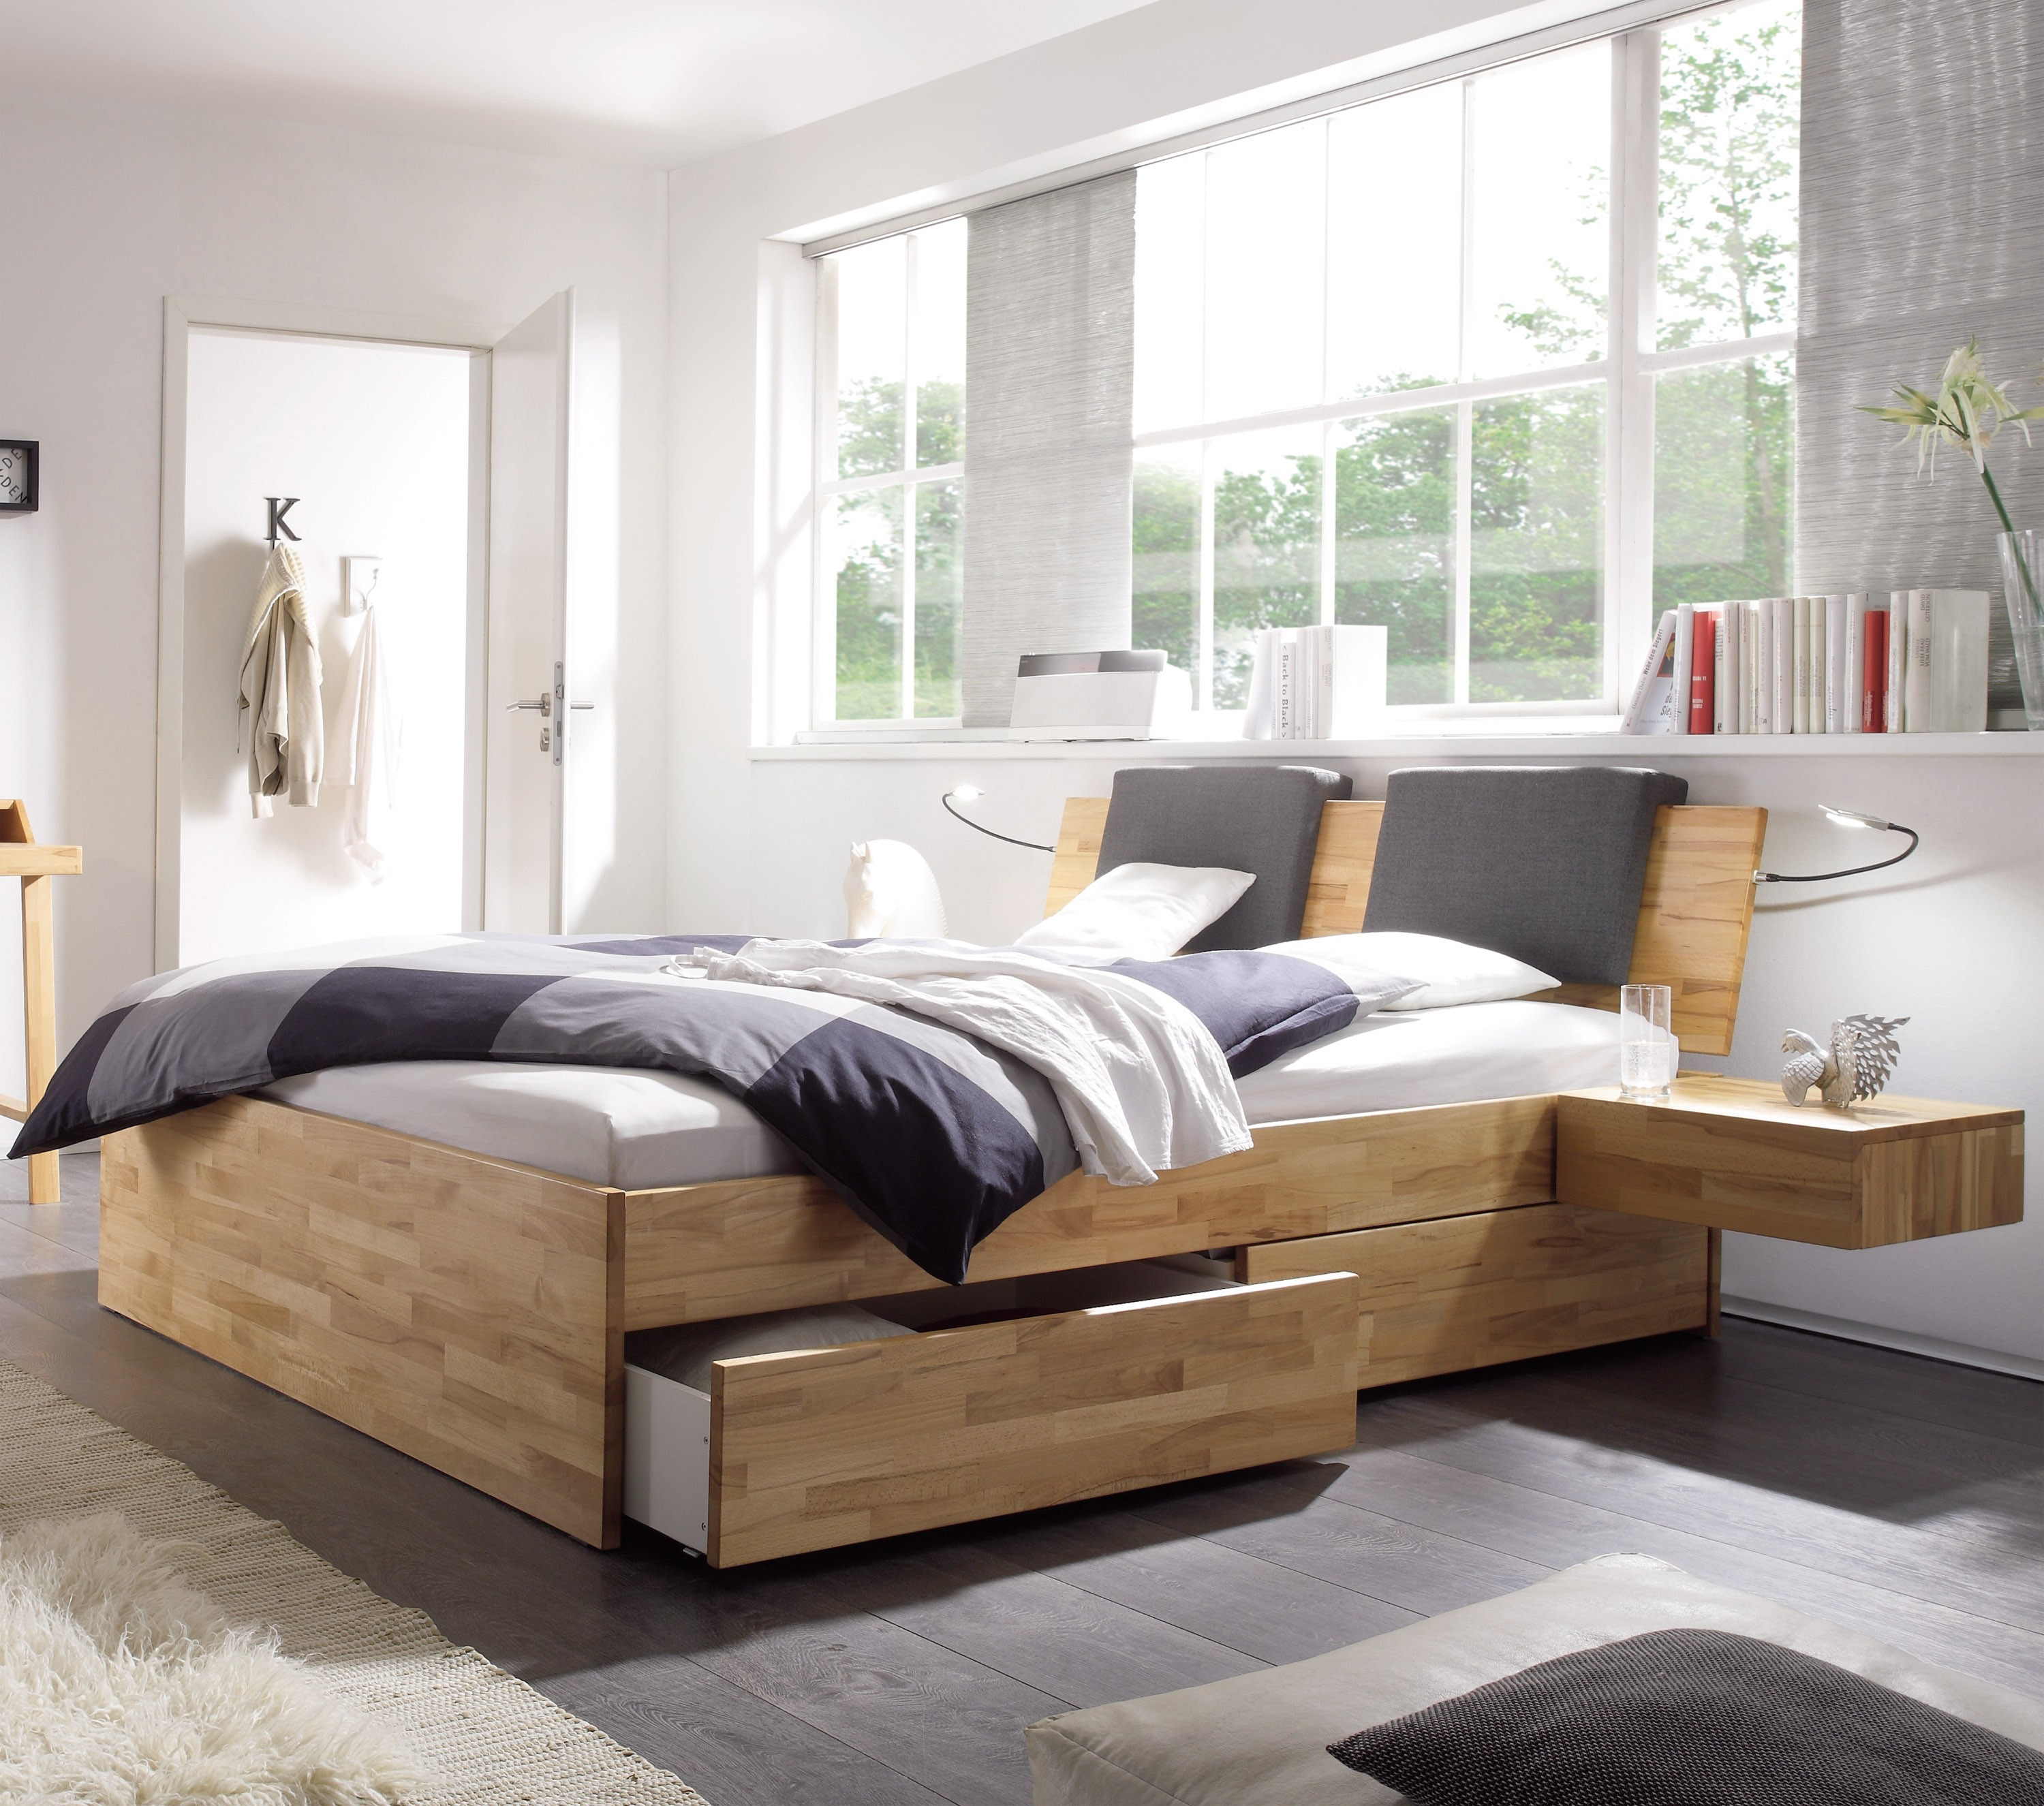 bett 100x200 mit bettkasten great taupe zoom with bett 100x200 mit bettkasten stunning. Black Bedroom Furniture Sets. Home Design Ideas